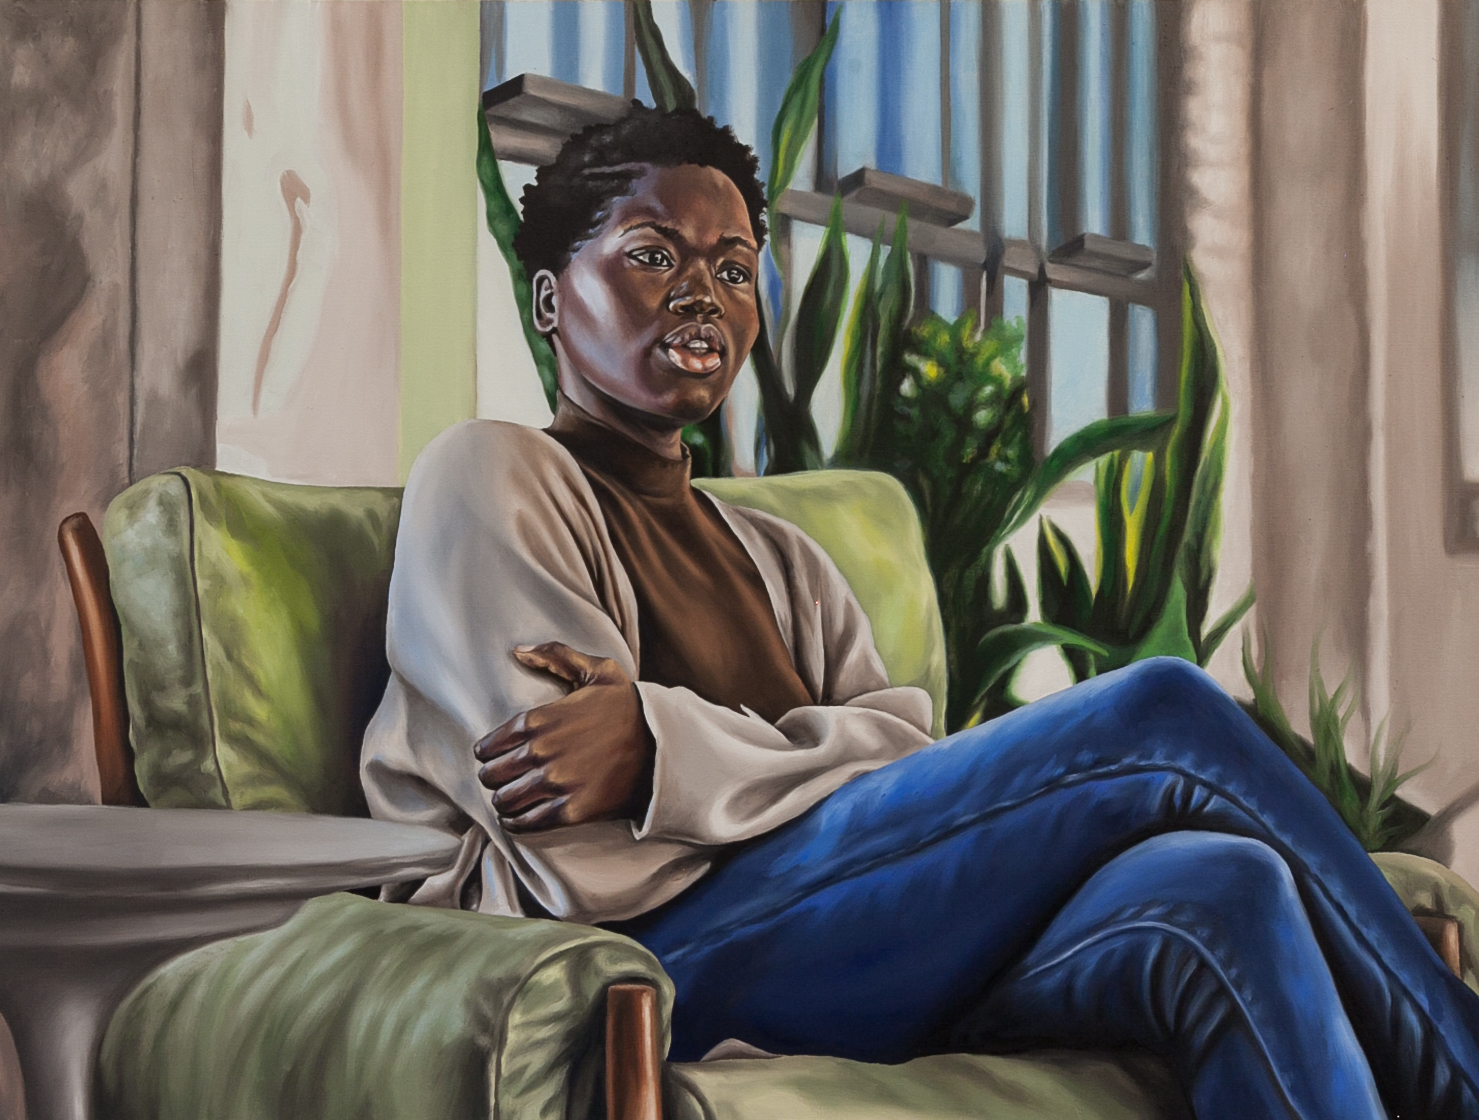 Richard Echols (Cordova, TN)   Gaze,  2018  Medium: Oil paint on canvas  Dimensions: 36x24 inches